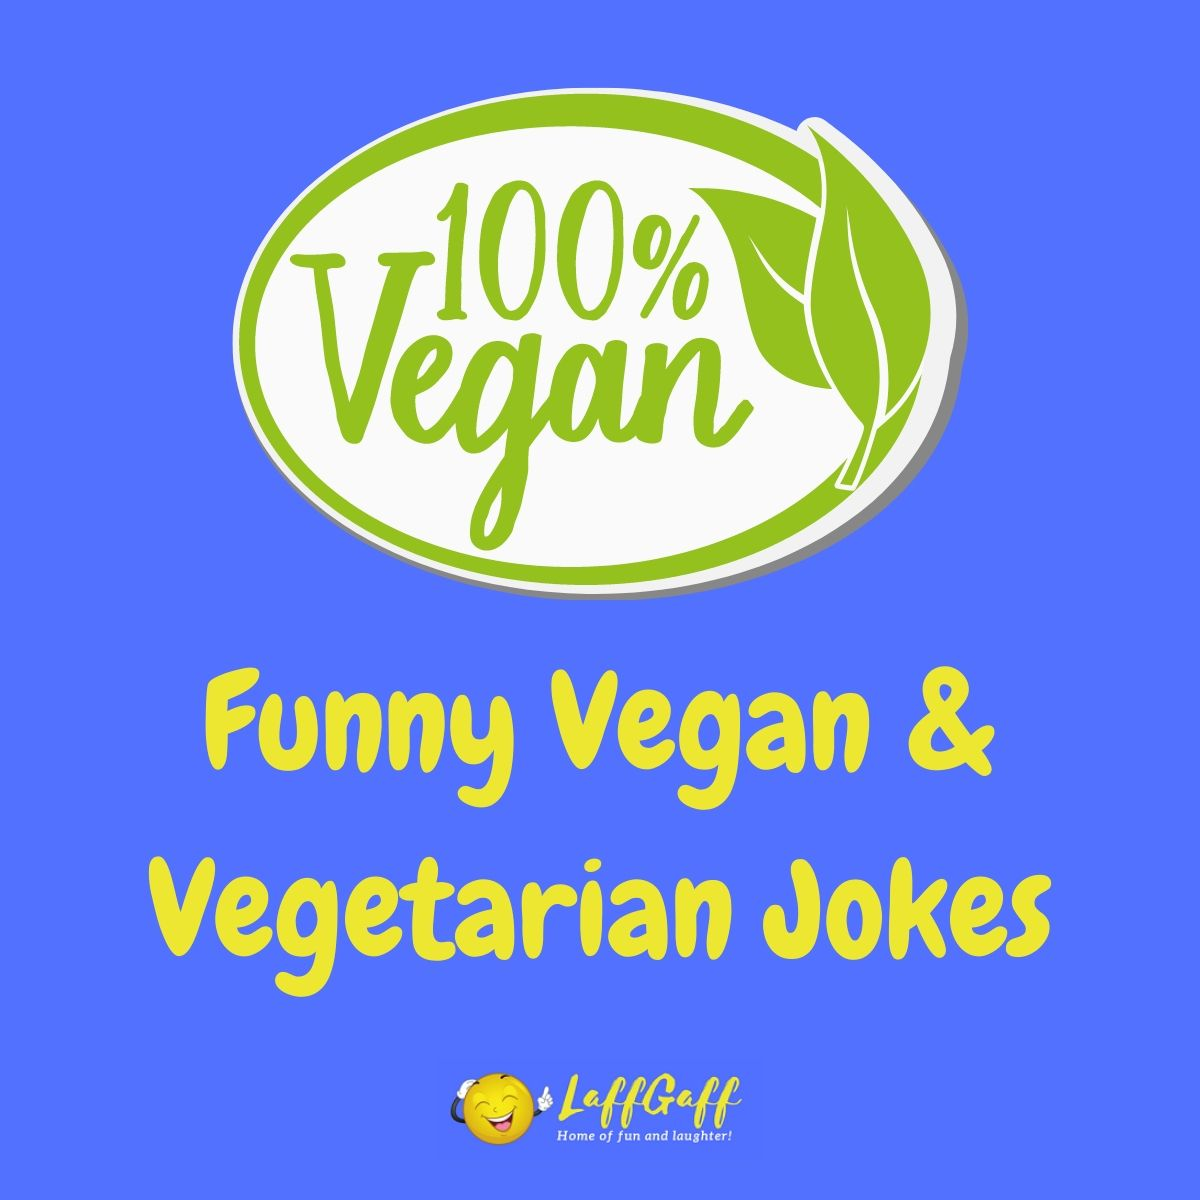 Featured image for a page of funny vegetarian jokes and vegan jokes.